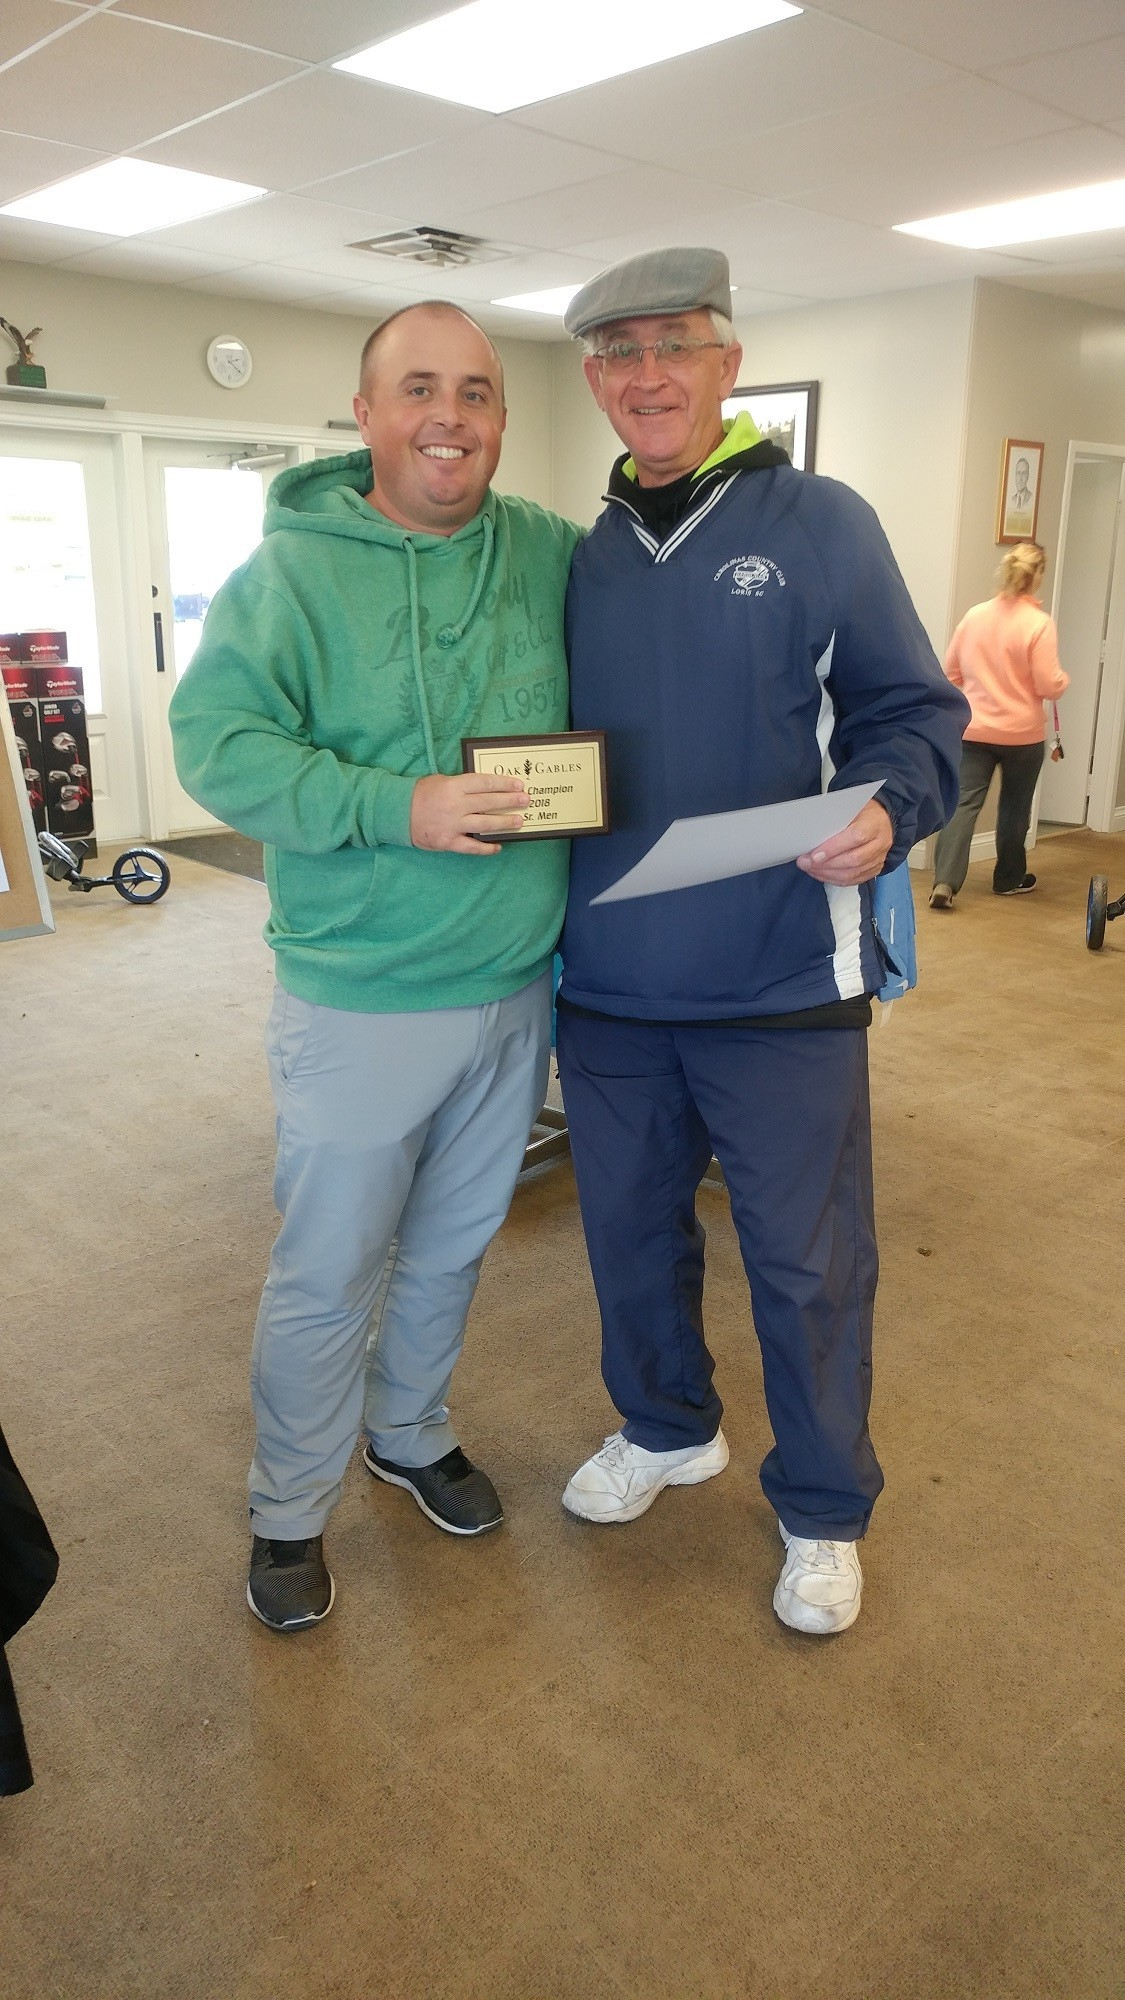 Congrats to Ray Czerwonka 2018 Senior Club Champion